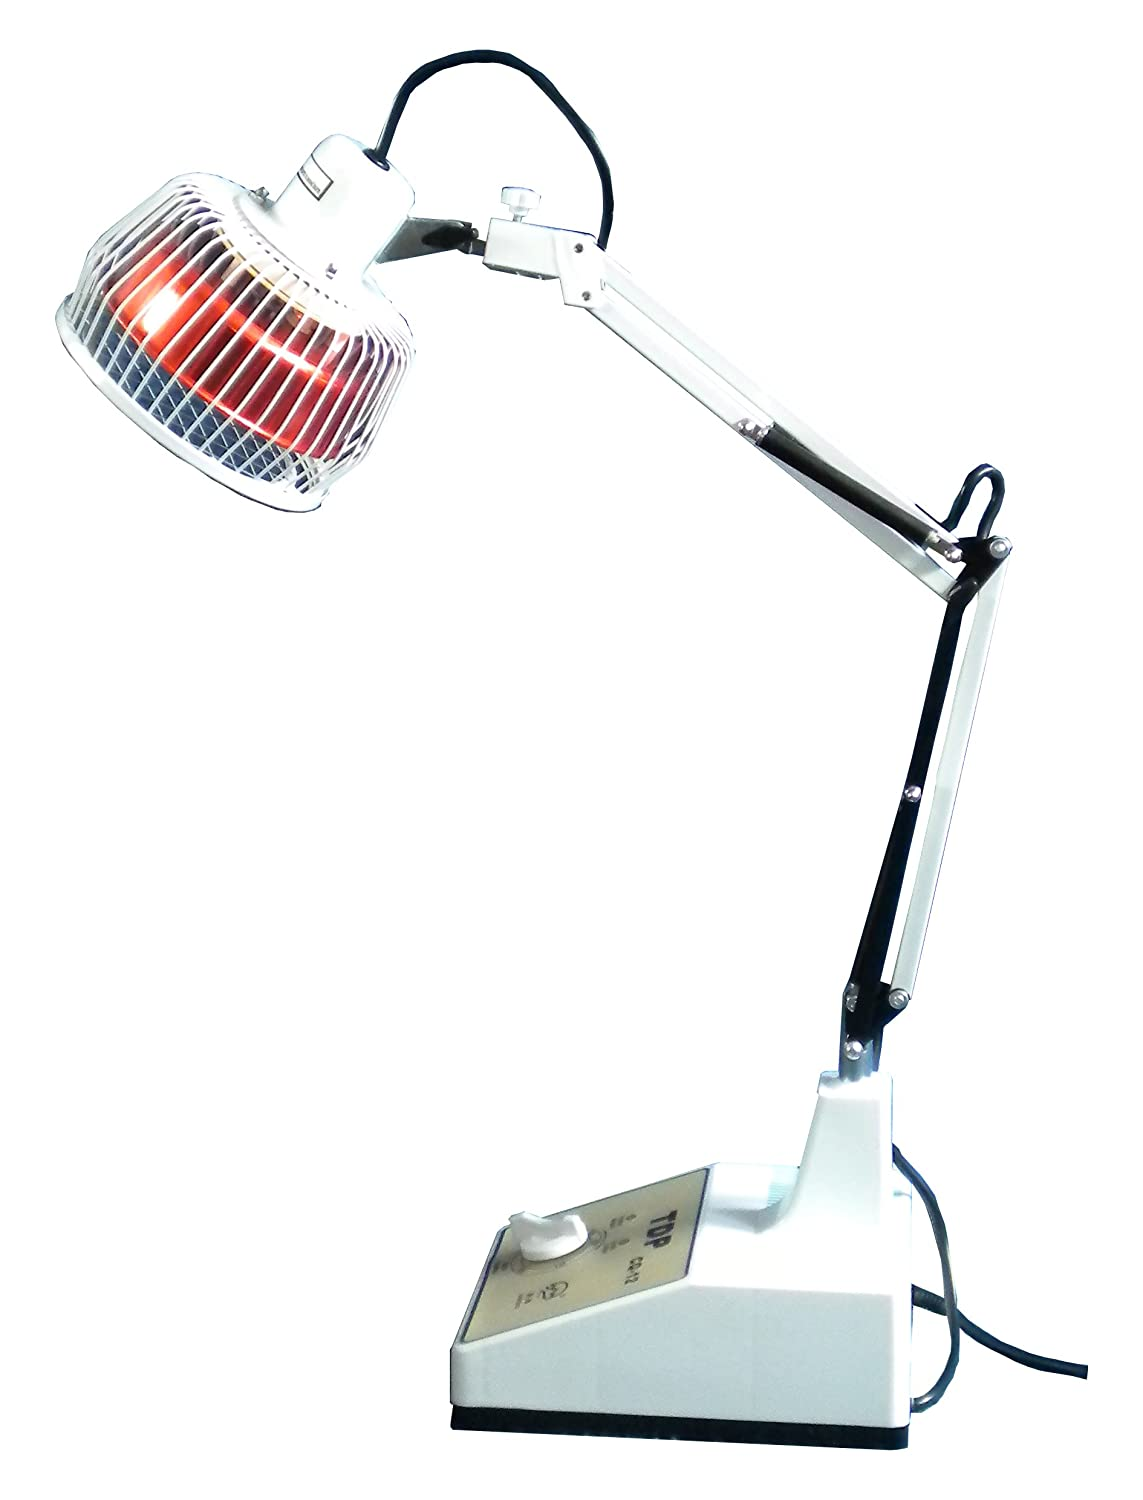 TDP Lamp CQ-12 Table-top: Amazon.co.uk: Health & Personal Care